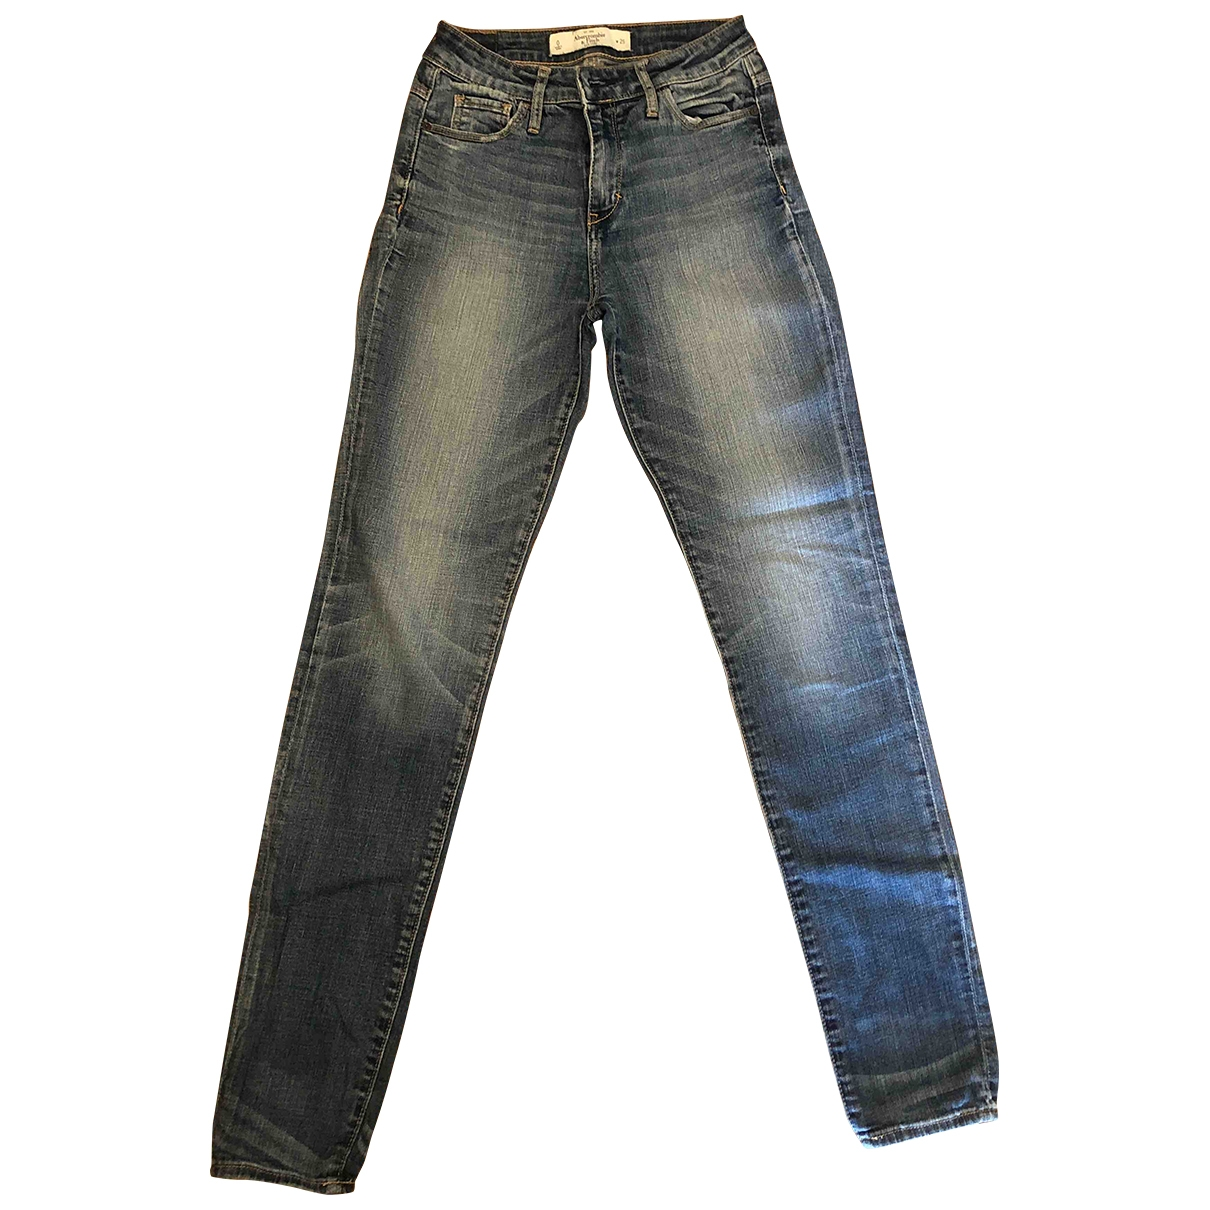 Abercrombie & Fitch \N Blue Denim - Jeans Jeans for Women 27 US